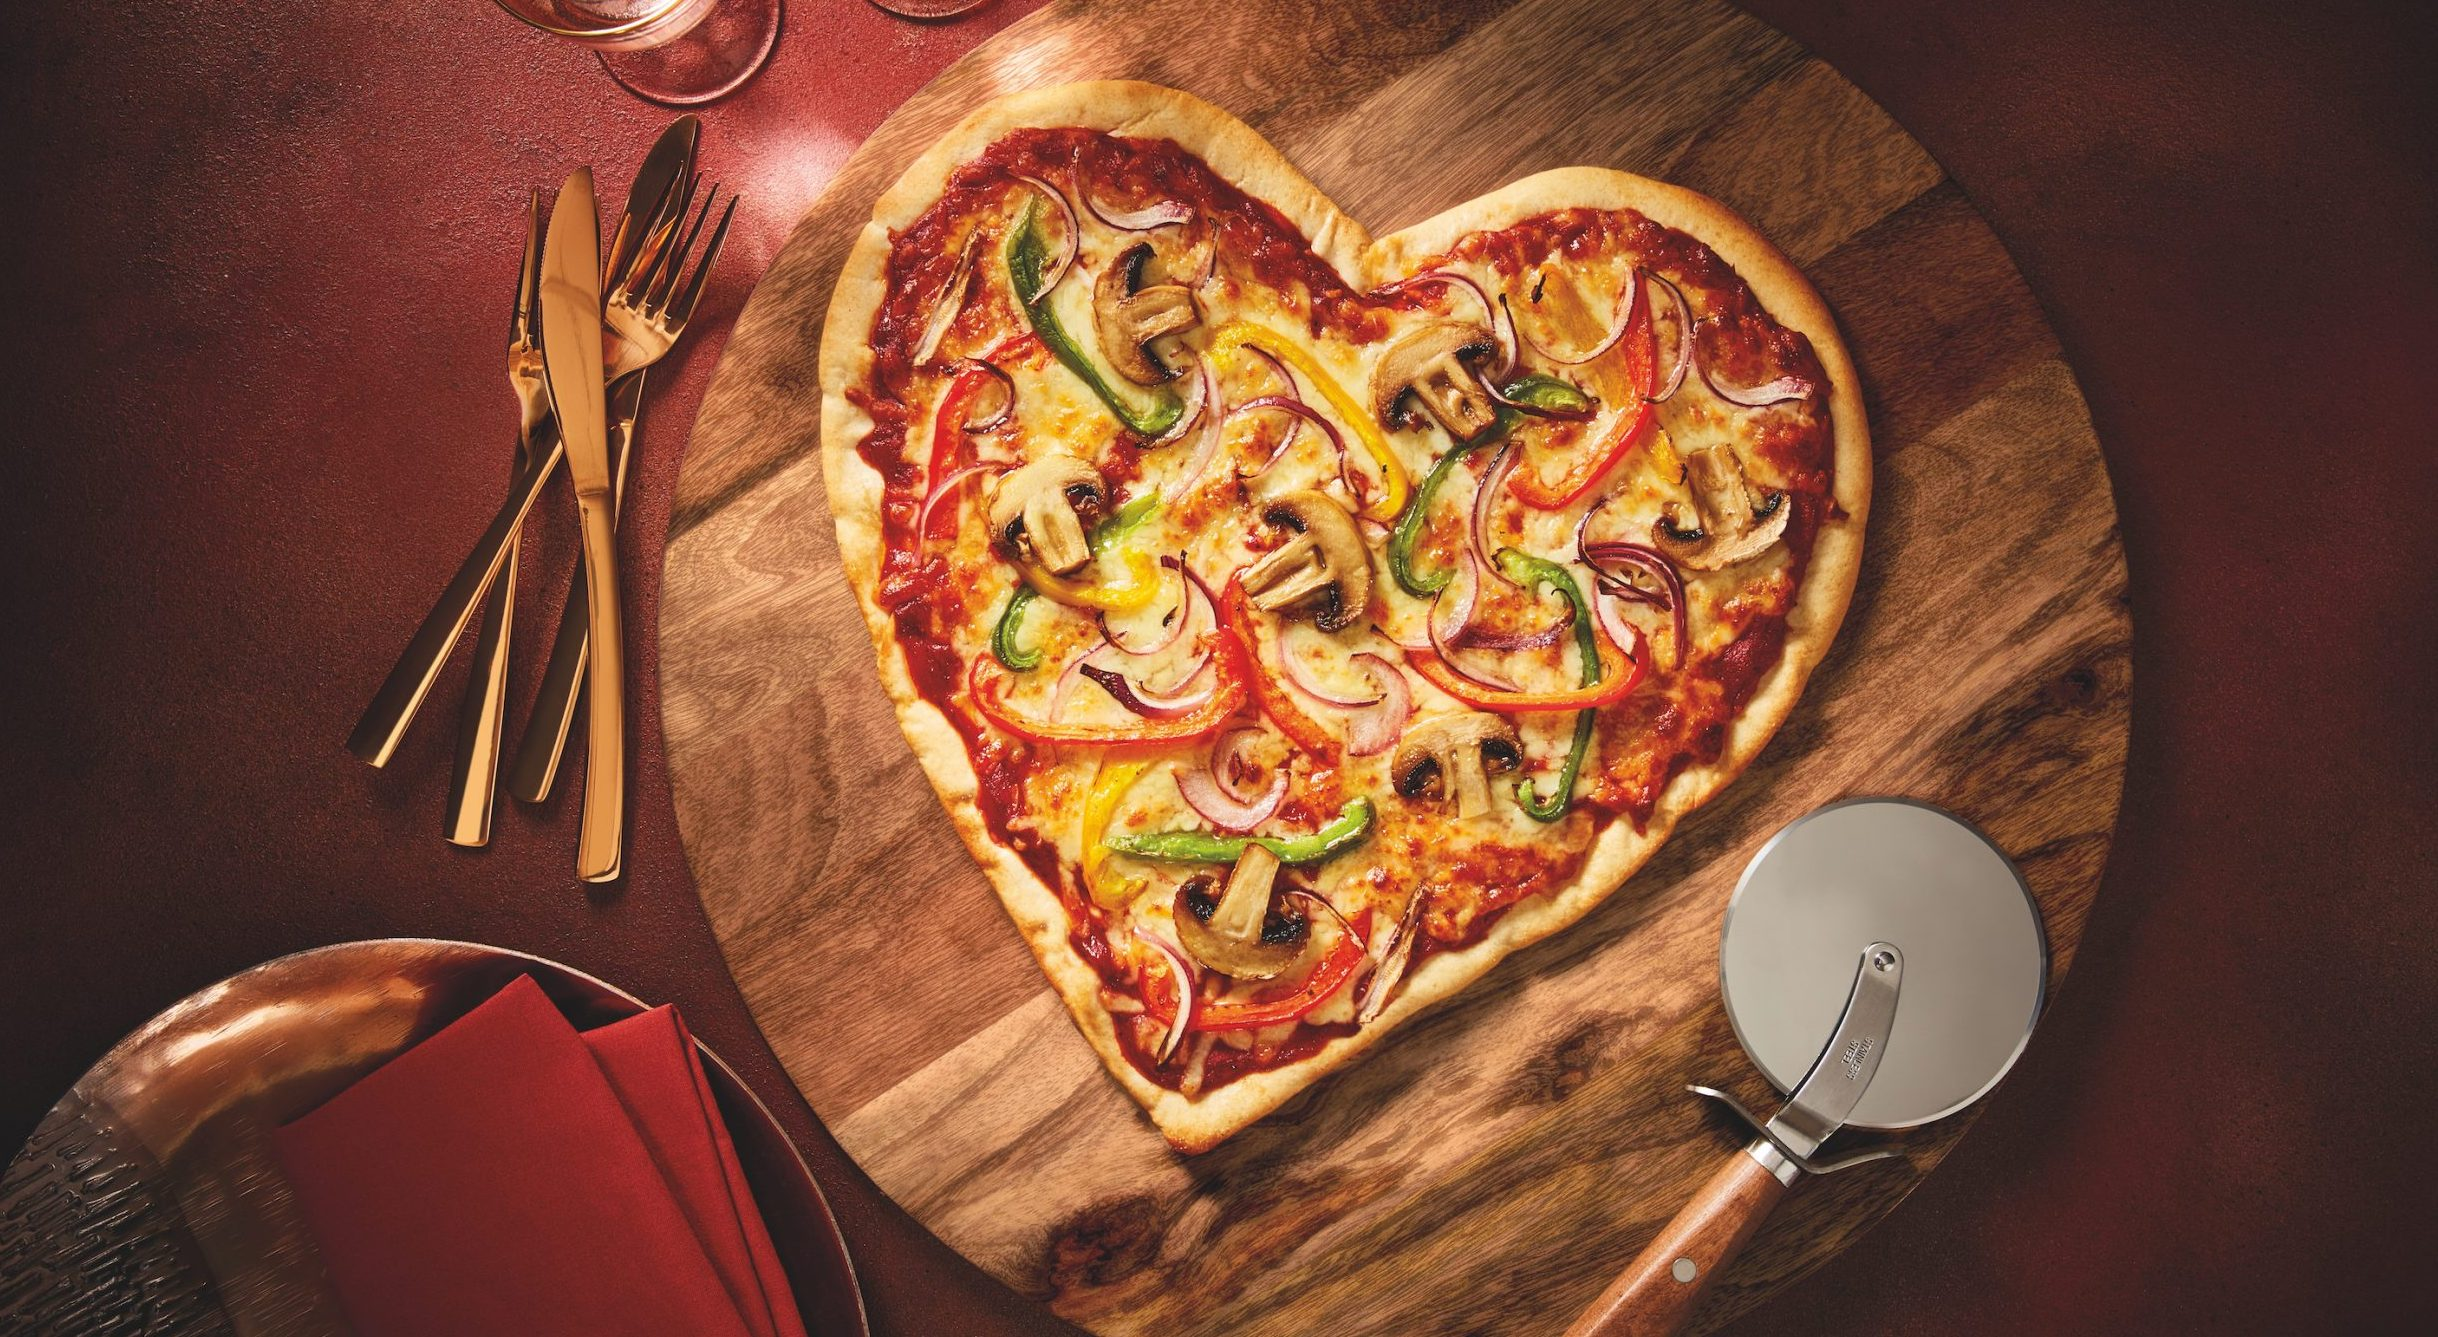 Shoppers fall in love with Morrisons' mouthwatering heart-shaped Valentine's pizzas